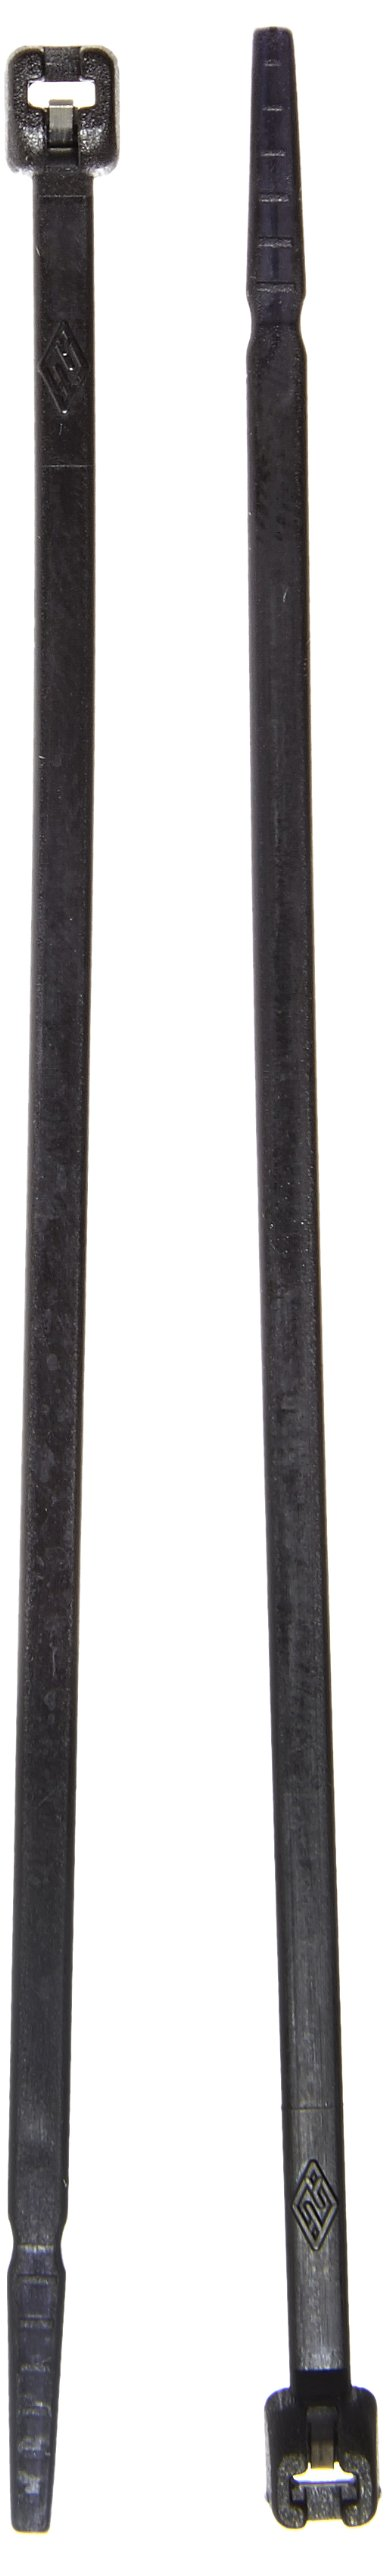 Cable Tie with Stainless Steel Barb, 18 Tensile Strength, 4'' Length, Black